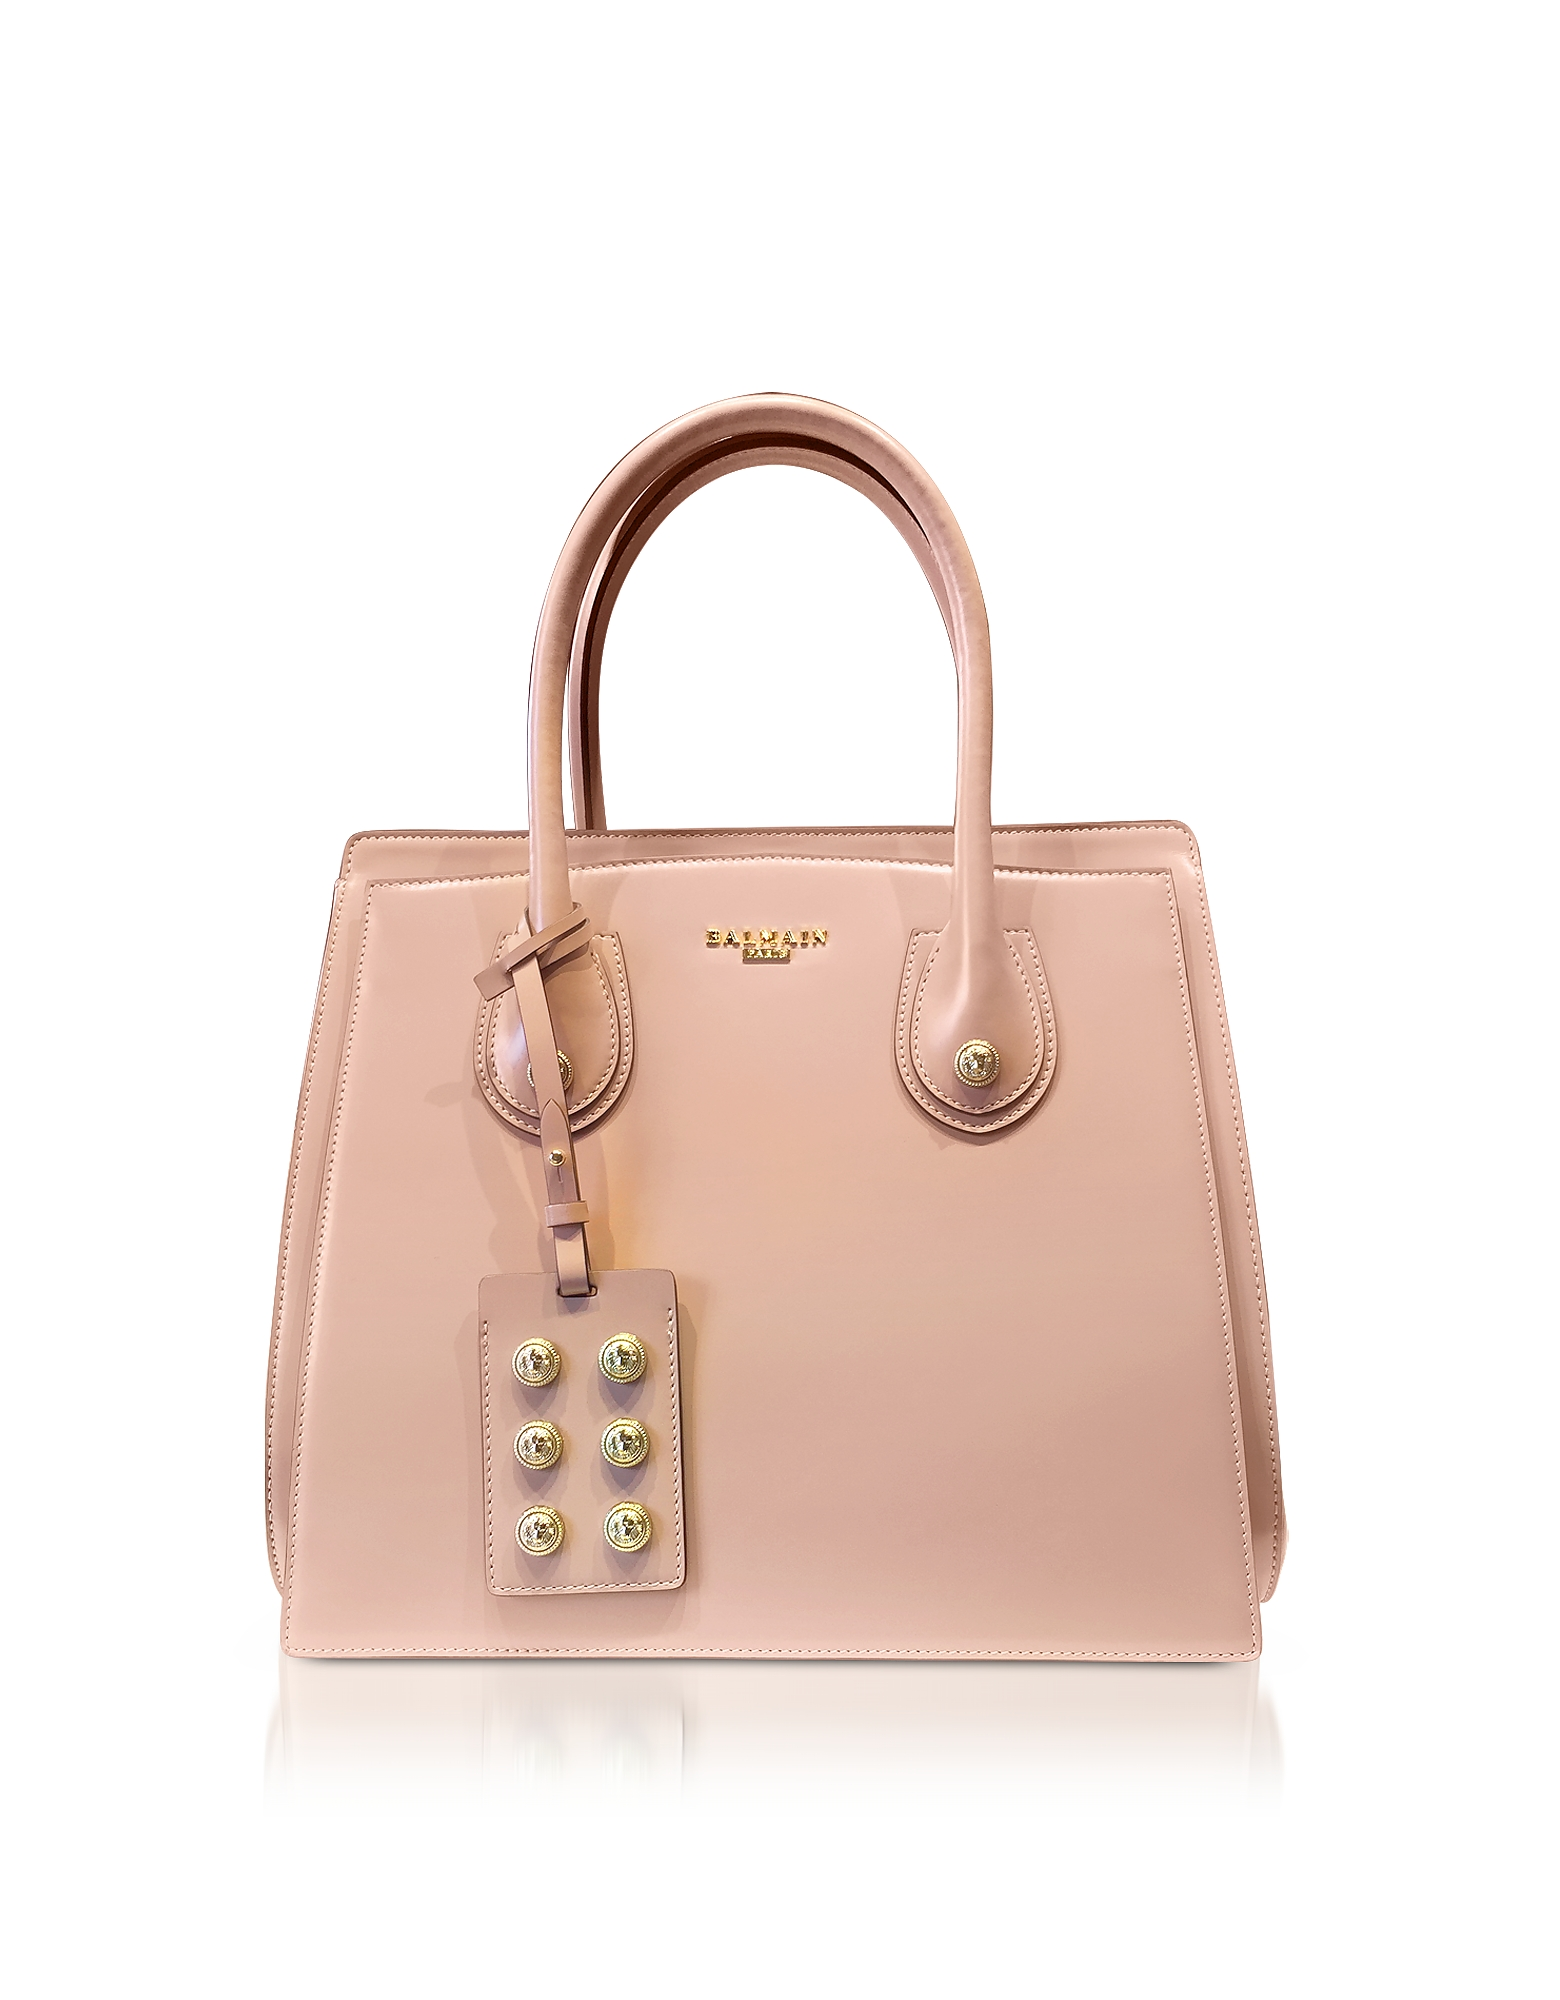 Image of 3D Borsa a Mano in Pelle Glossy Rosa Cipria